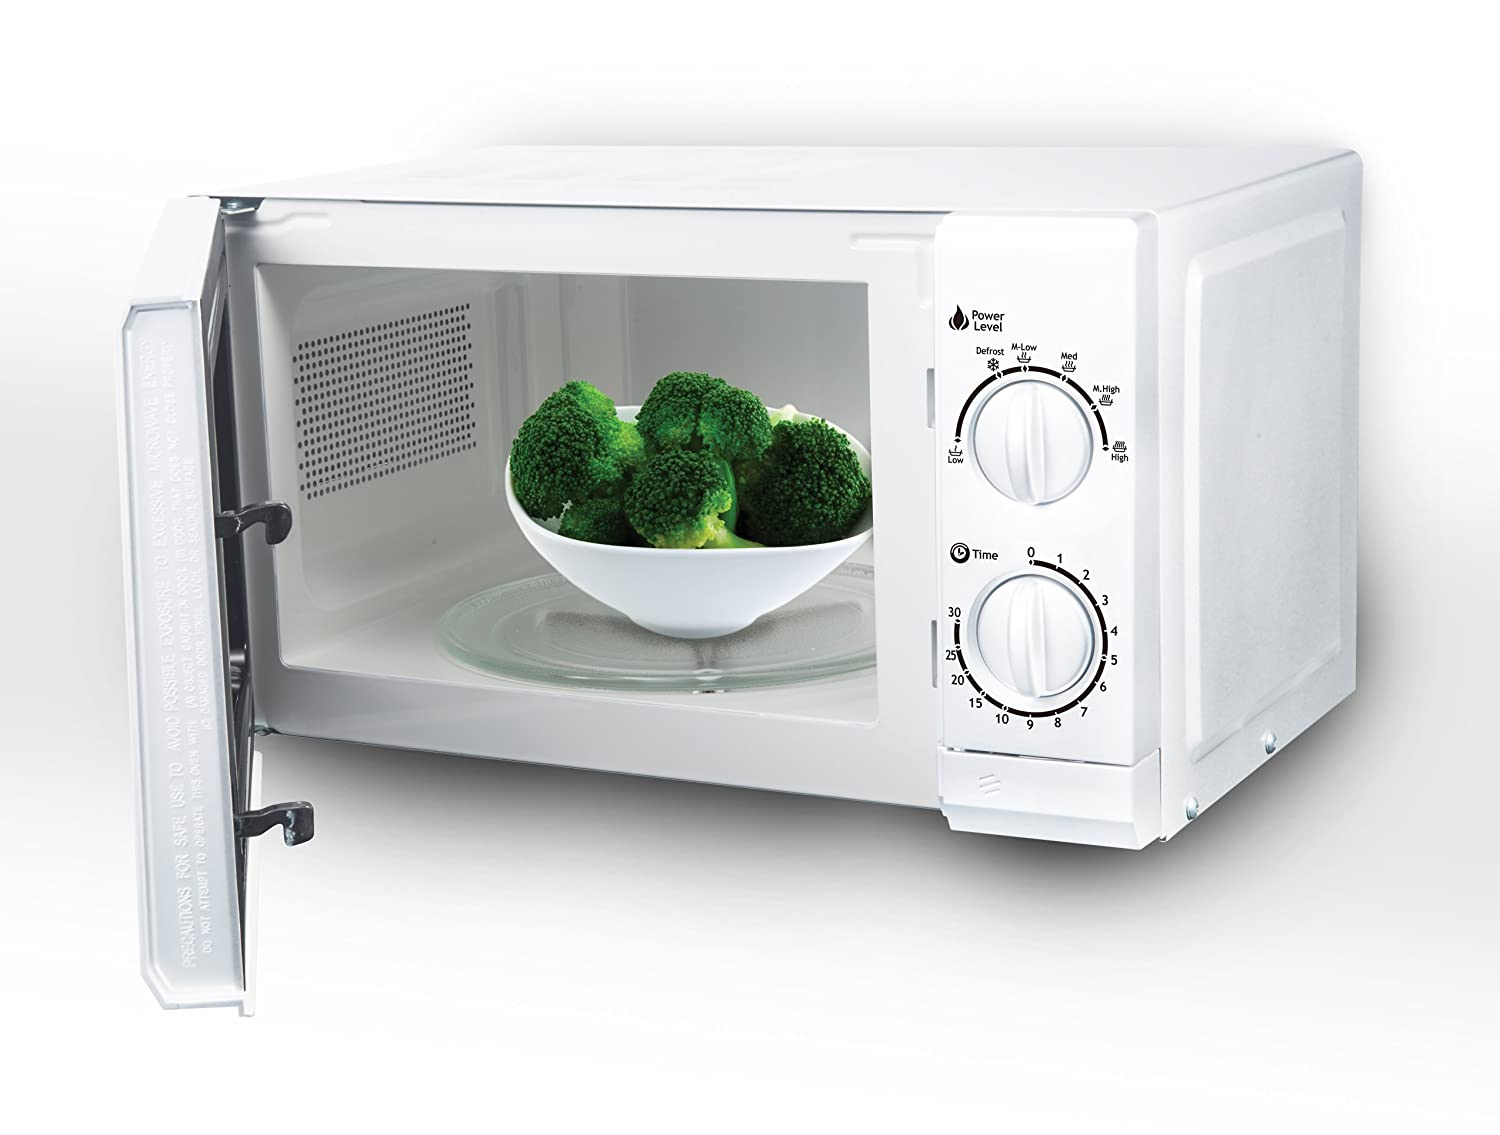 Impecca CM0674 700-Watts Countertop Microwave Oven, 120V 0.6 Cubic Feet, White